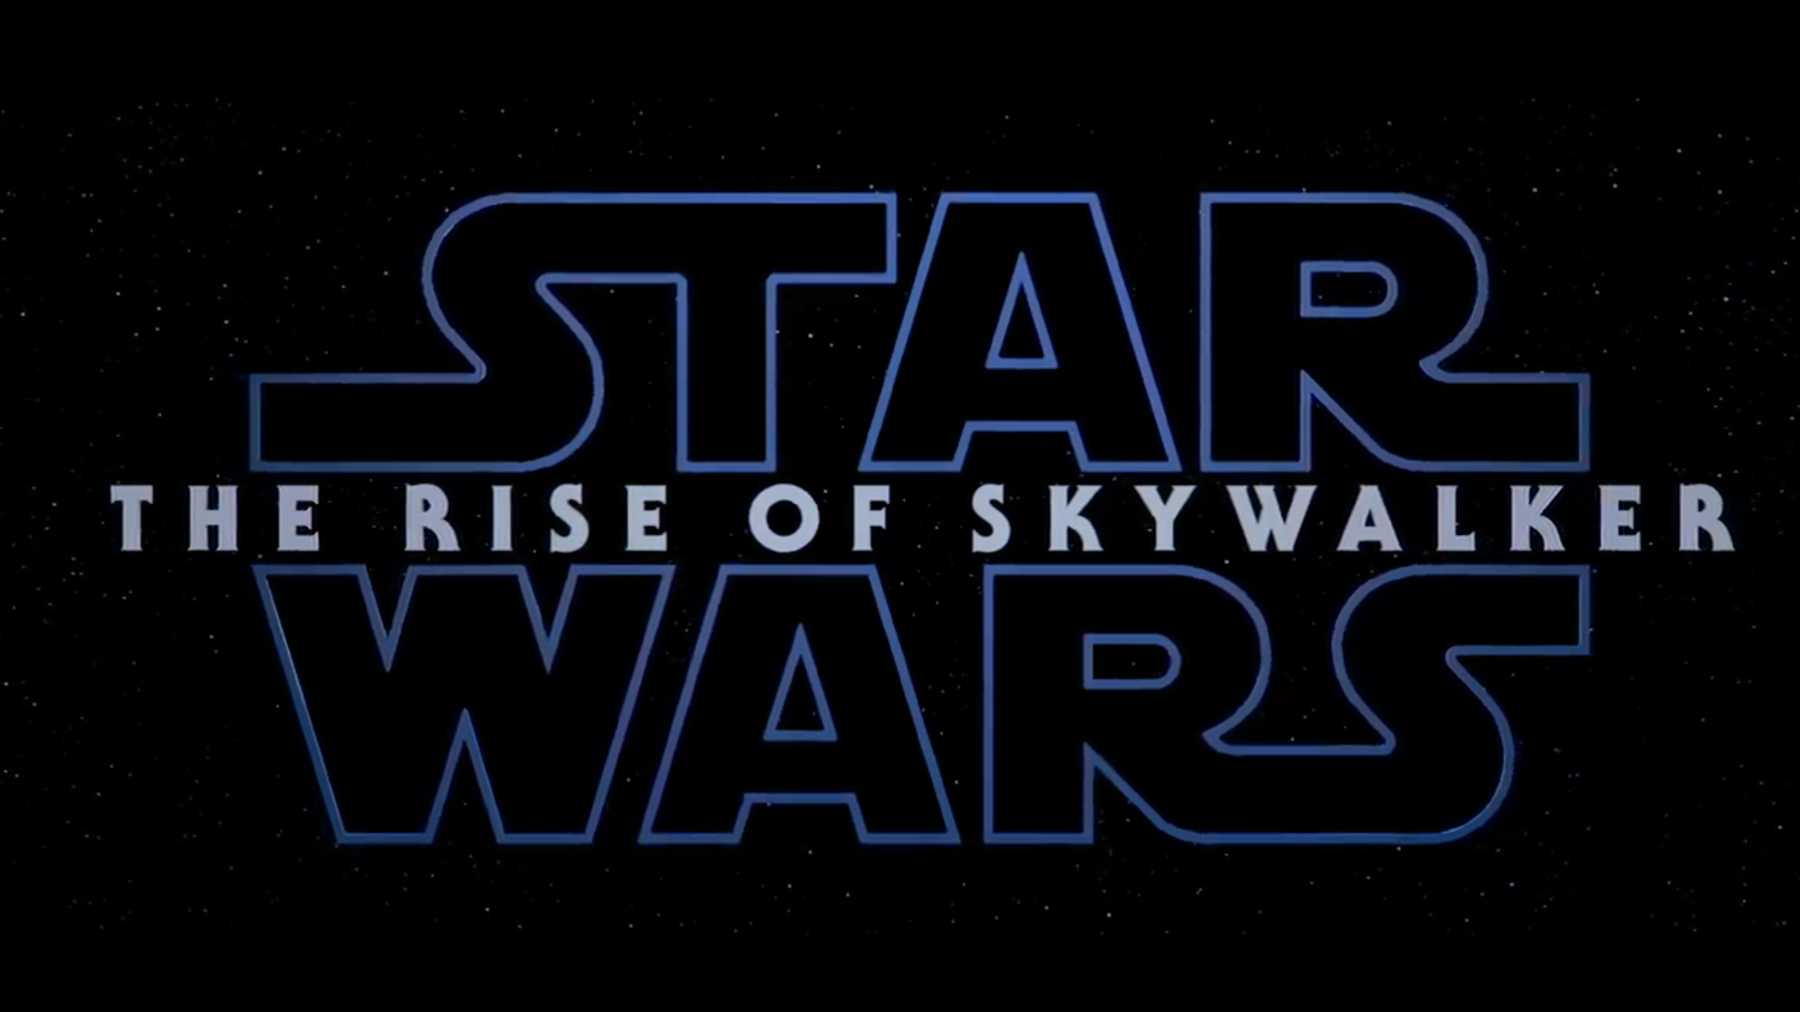 Star Wars Episode Ix Title The Rise Of Skywalker Confirmed By Trailer Movies Empire